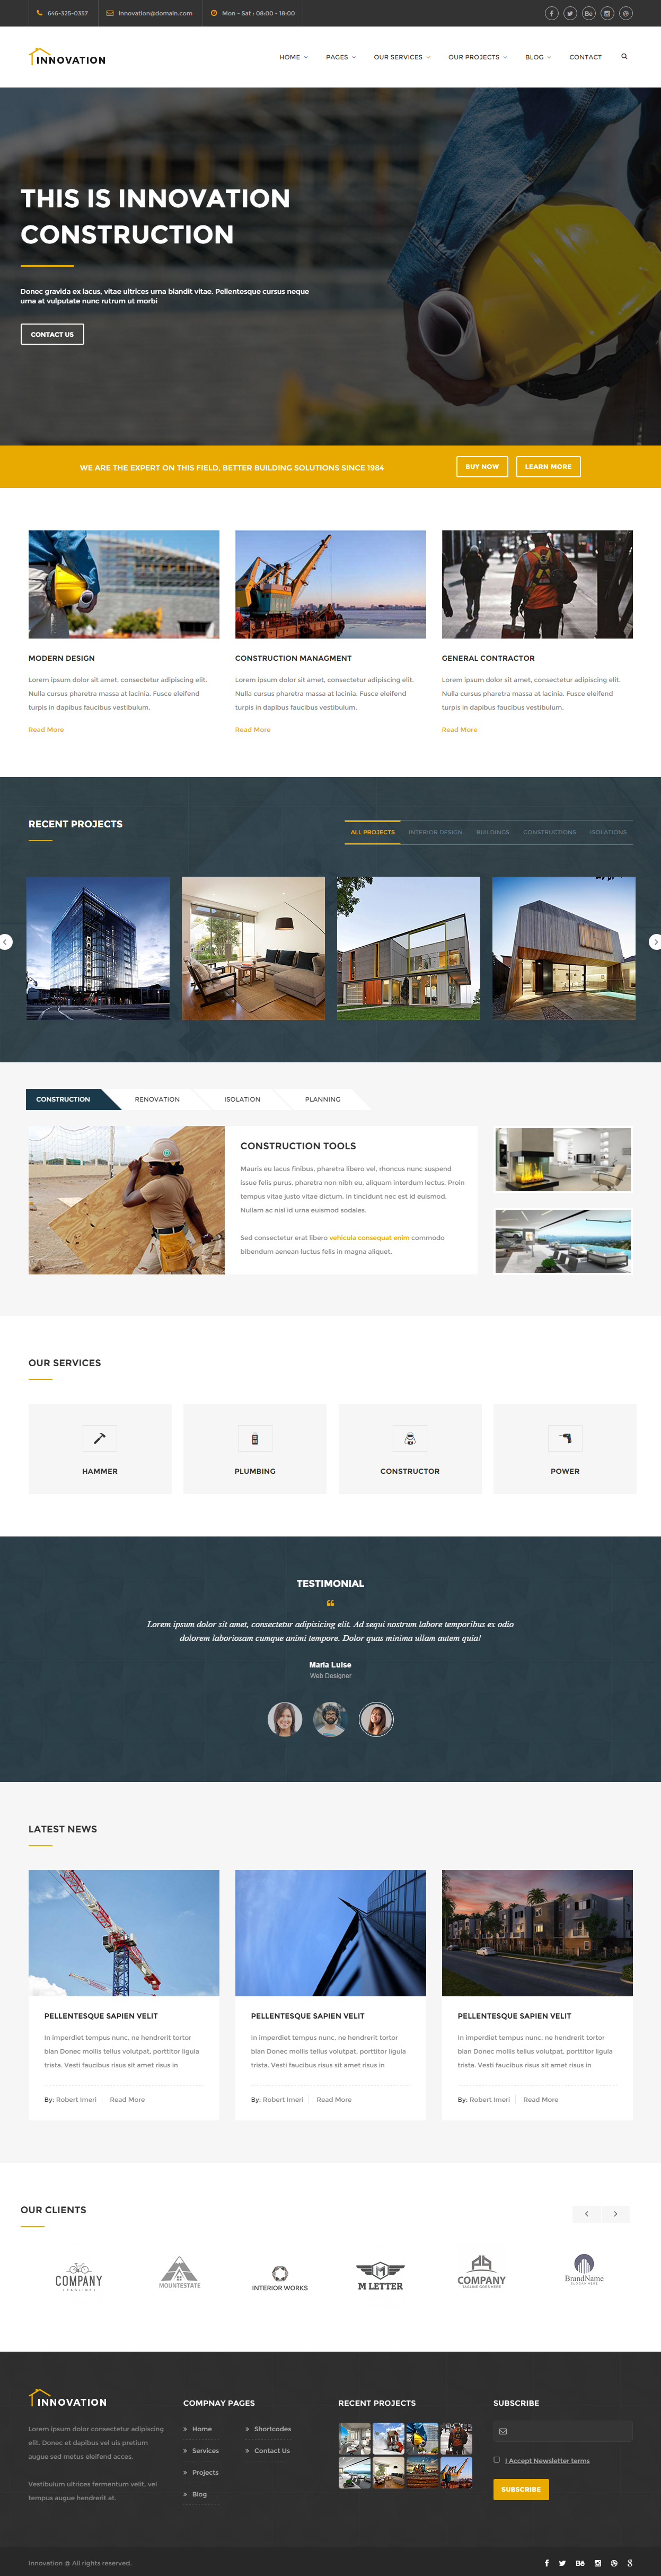 30+ Best Construction Company HTML5 Templates 2017 - Responsive ...